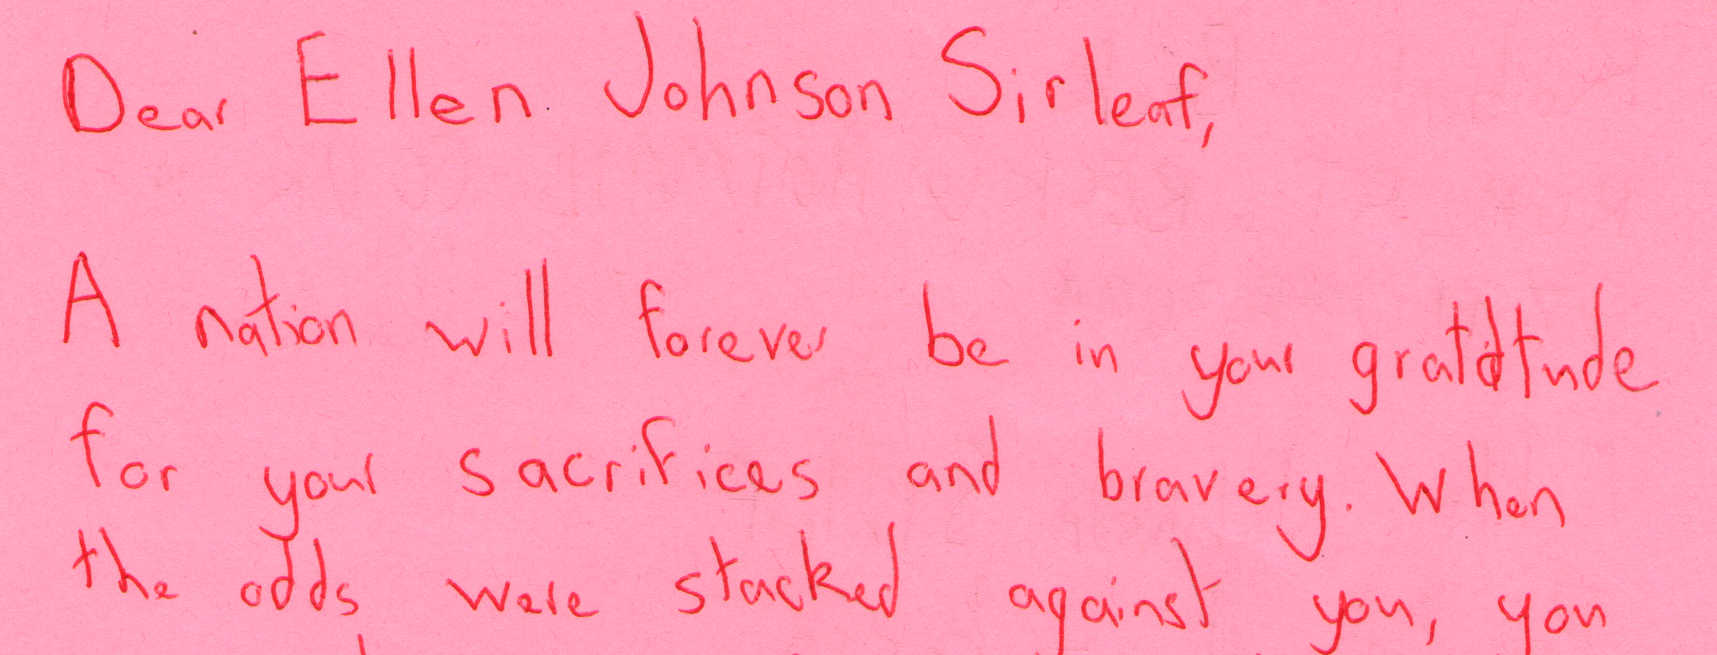 Letter to Ellen Johnson Sirleaf from Robert Beck